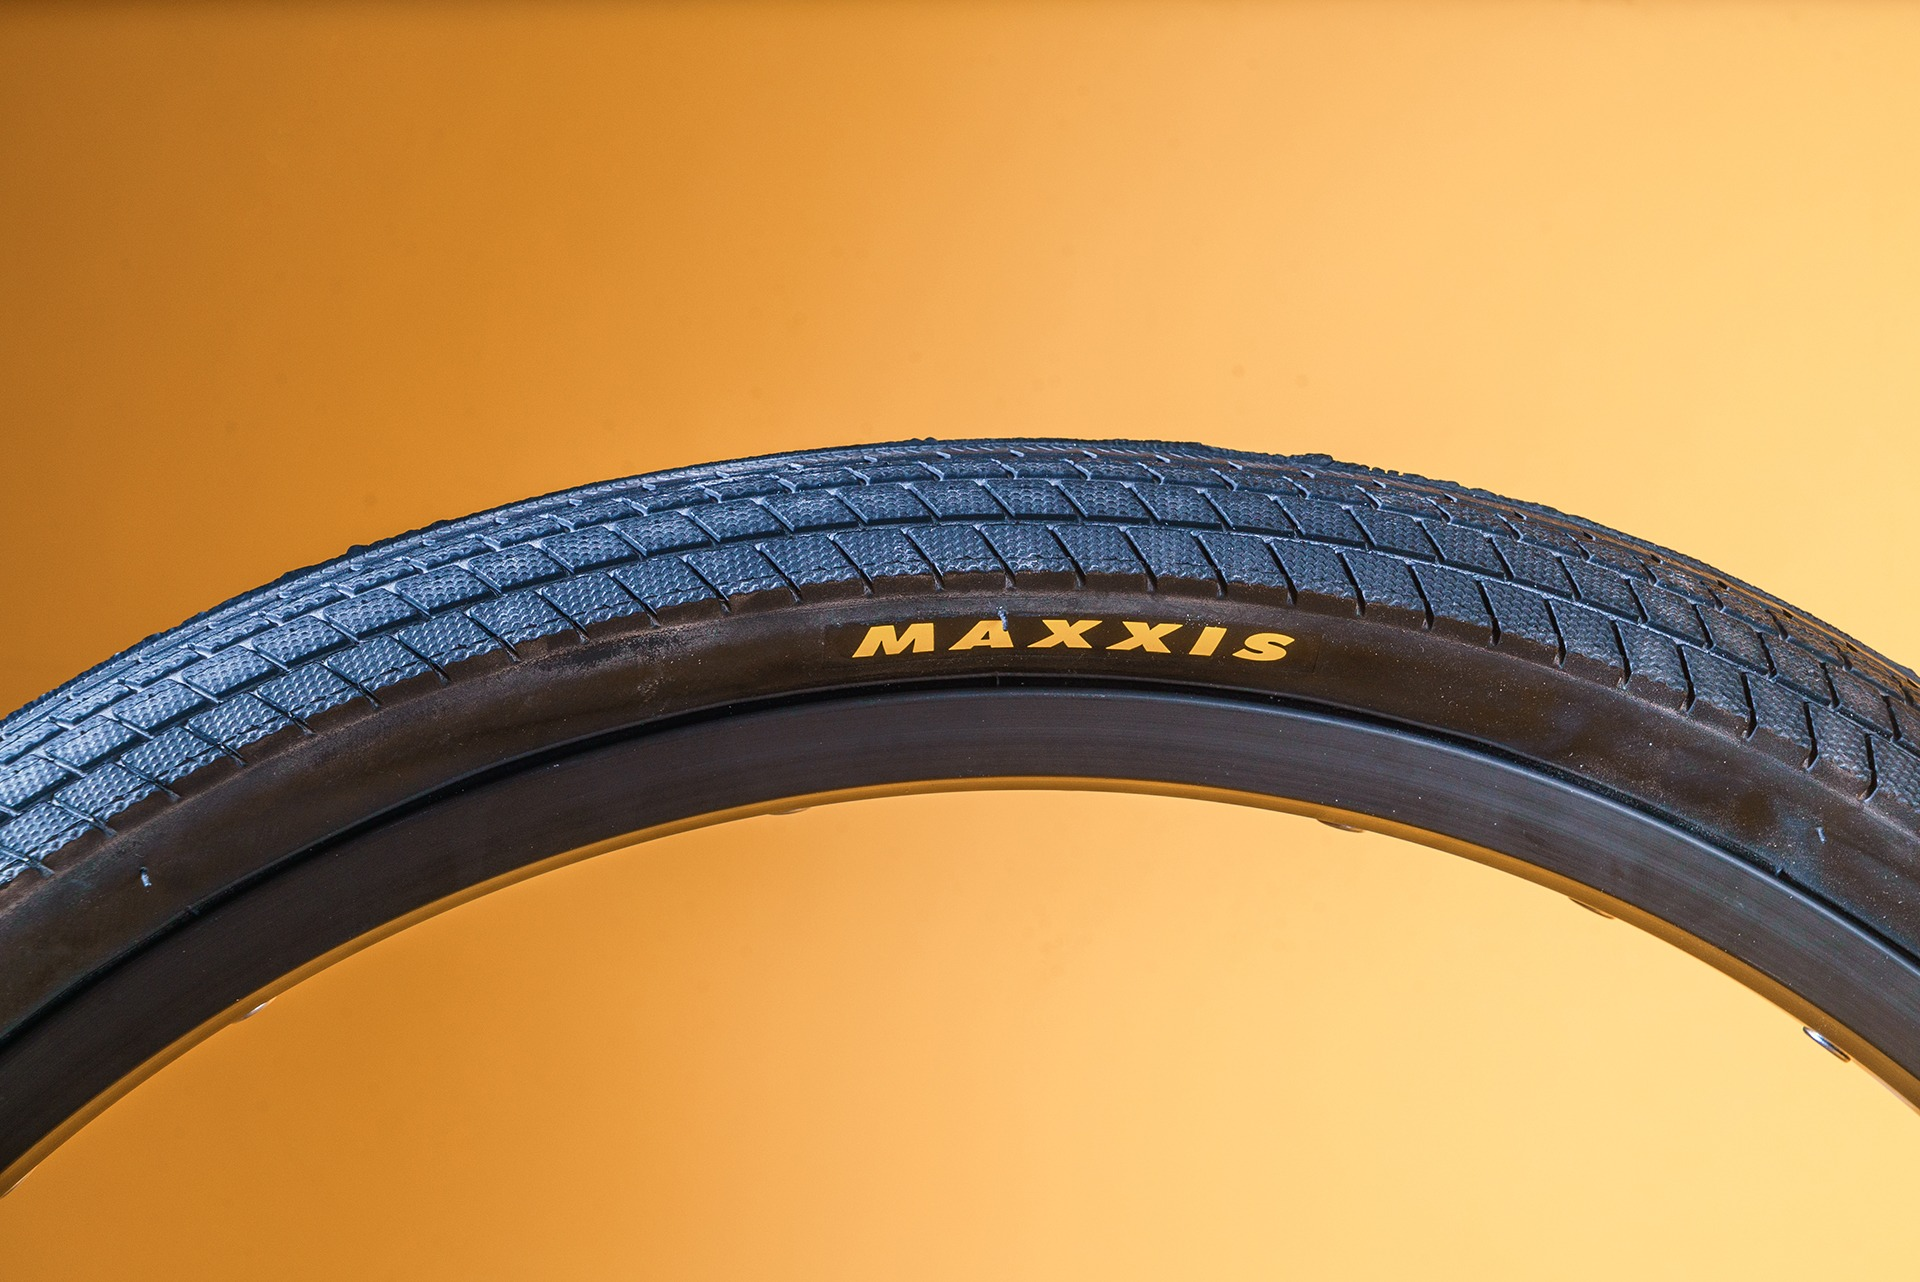 MAXXIS – TORCH FOLDING TYRES – REVIEW